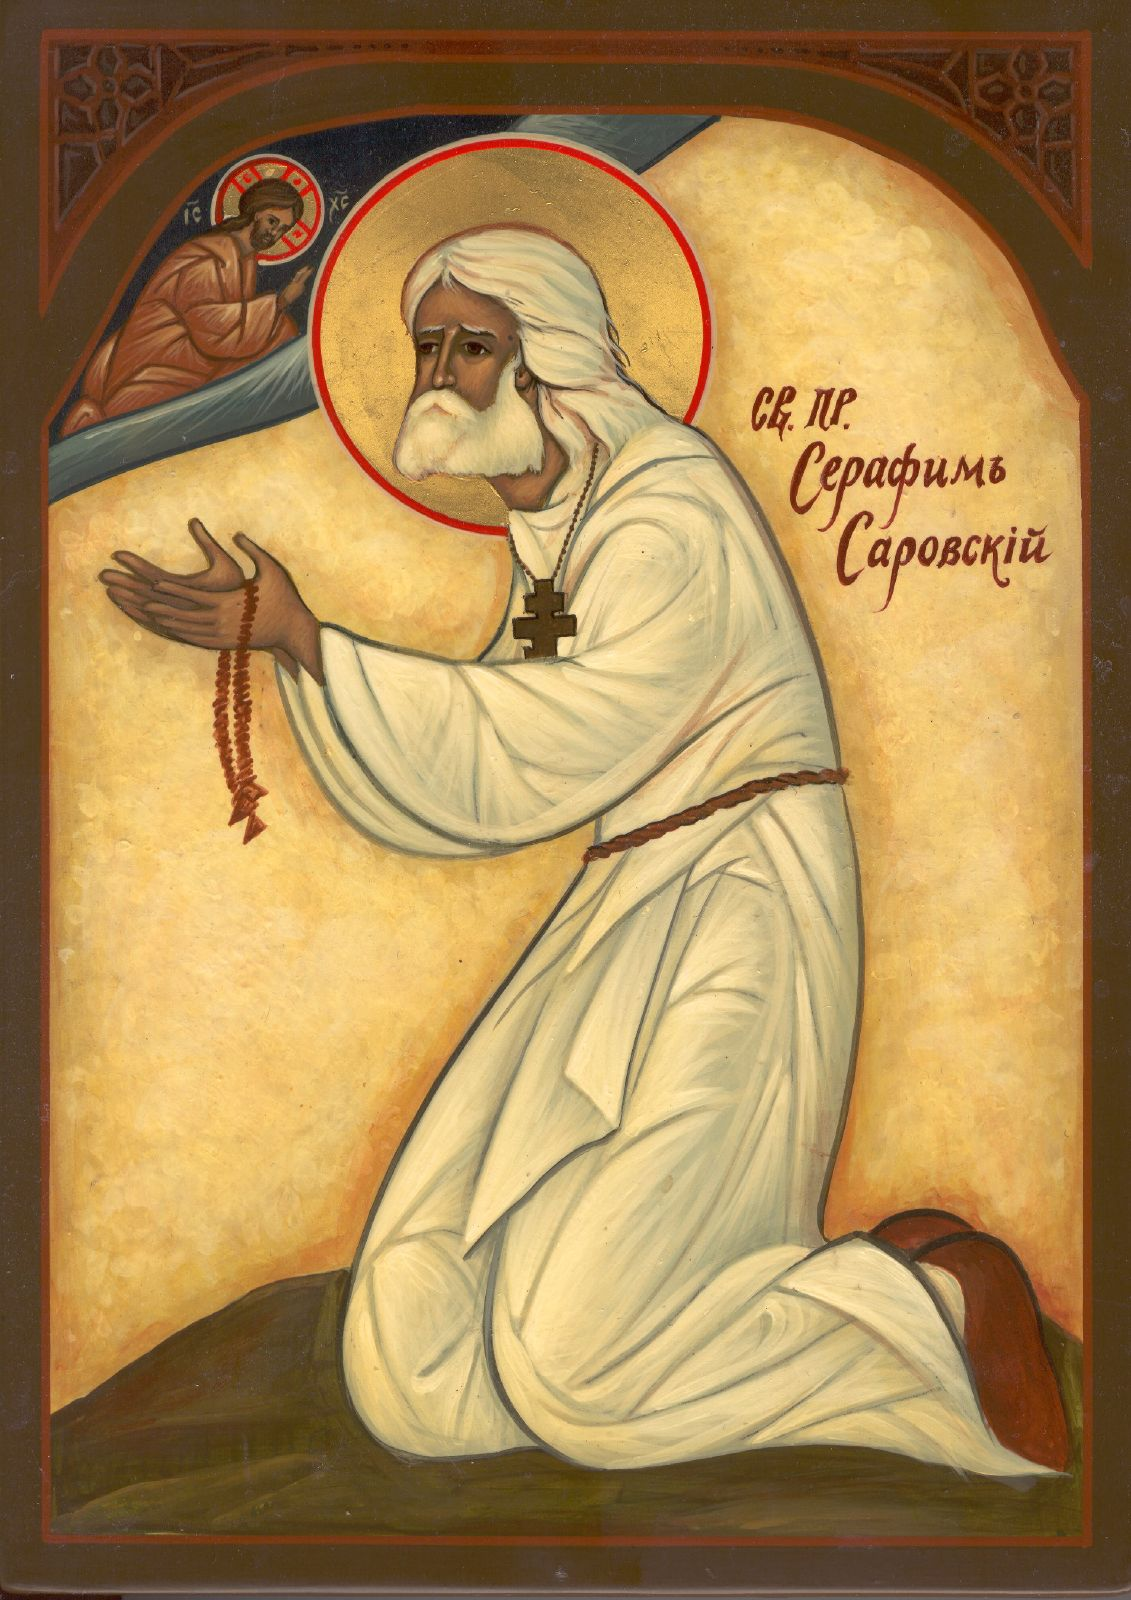 ST. SERAPHIM OF SAROV: ON THE ACQUISITION OF THE HOLY SPIRIT